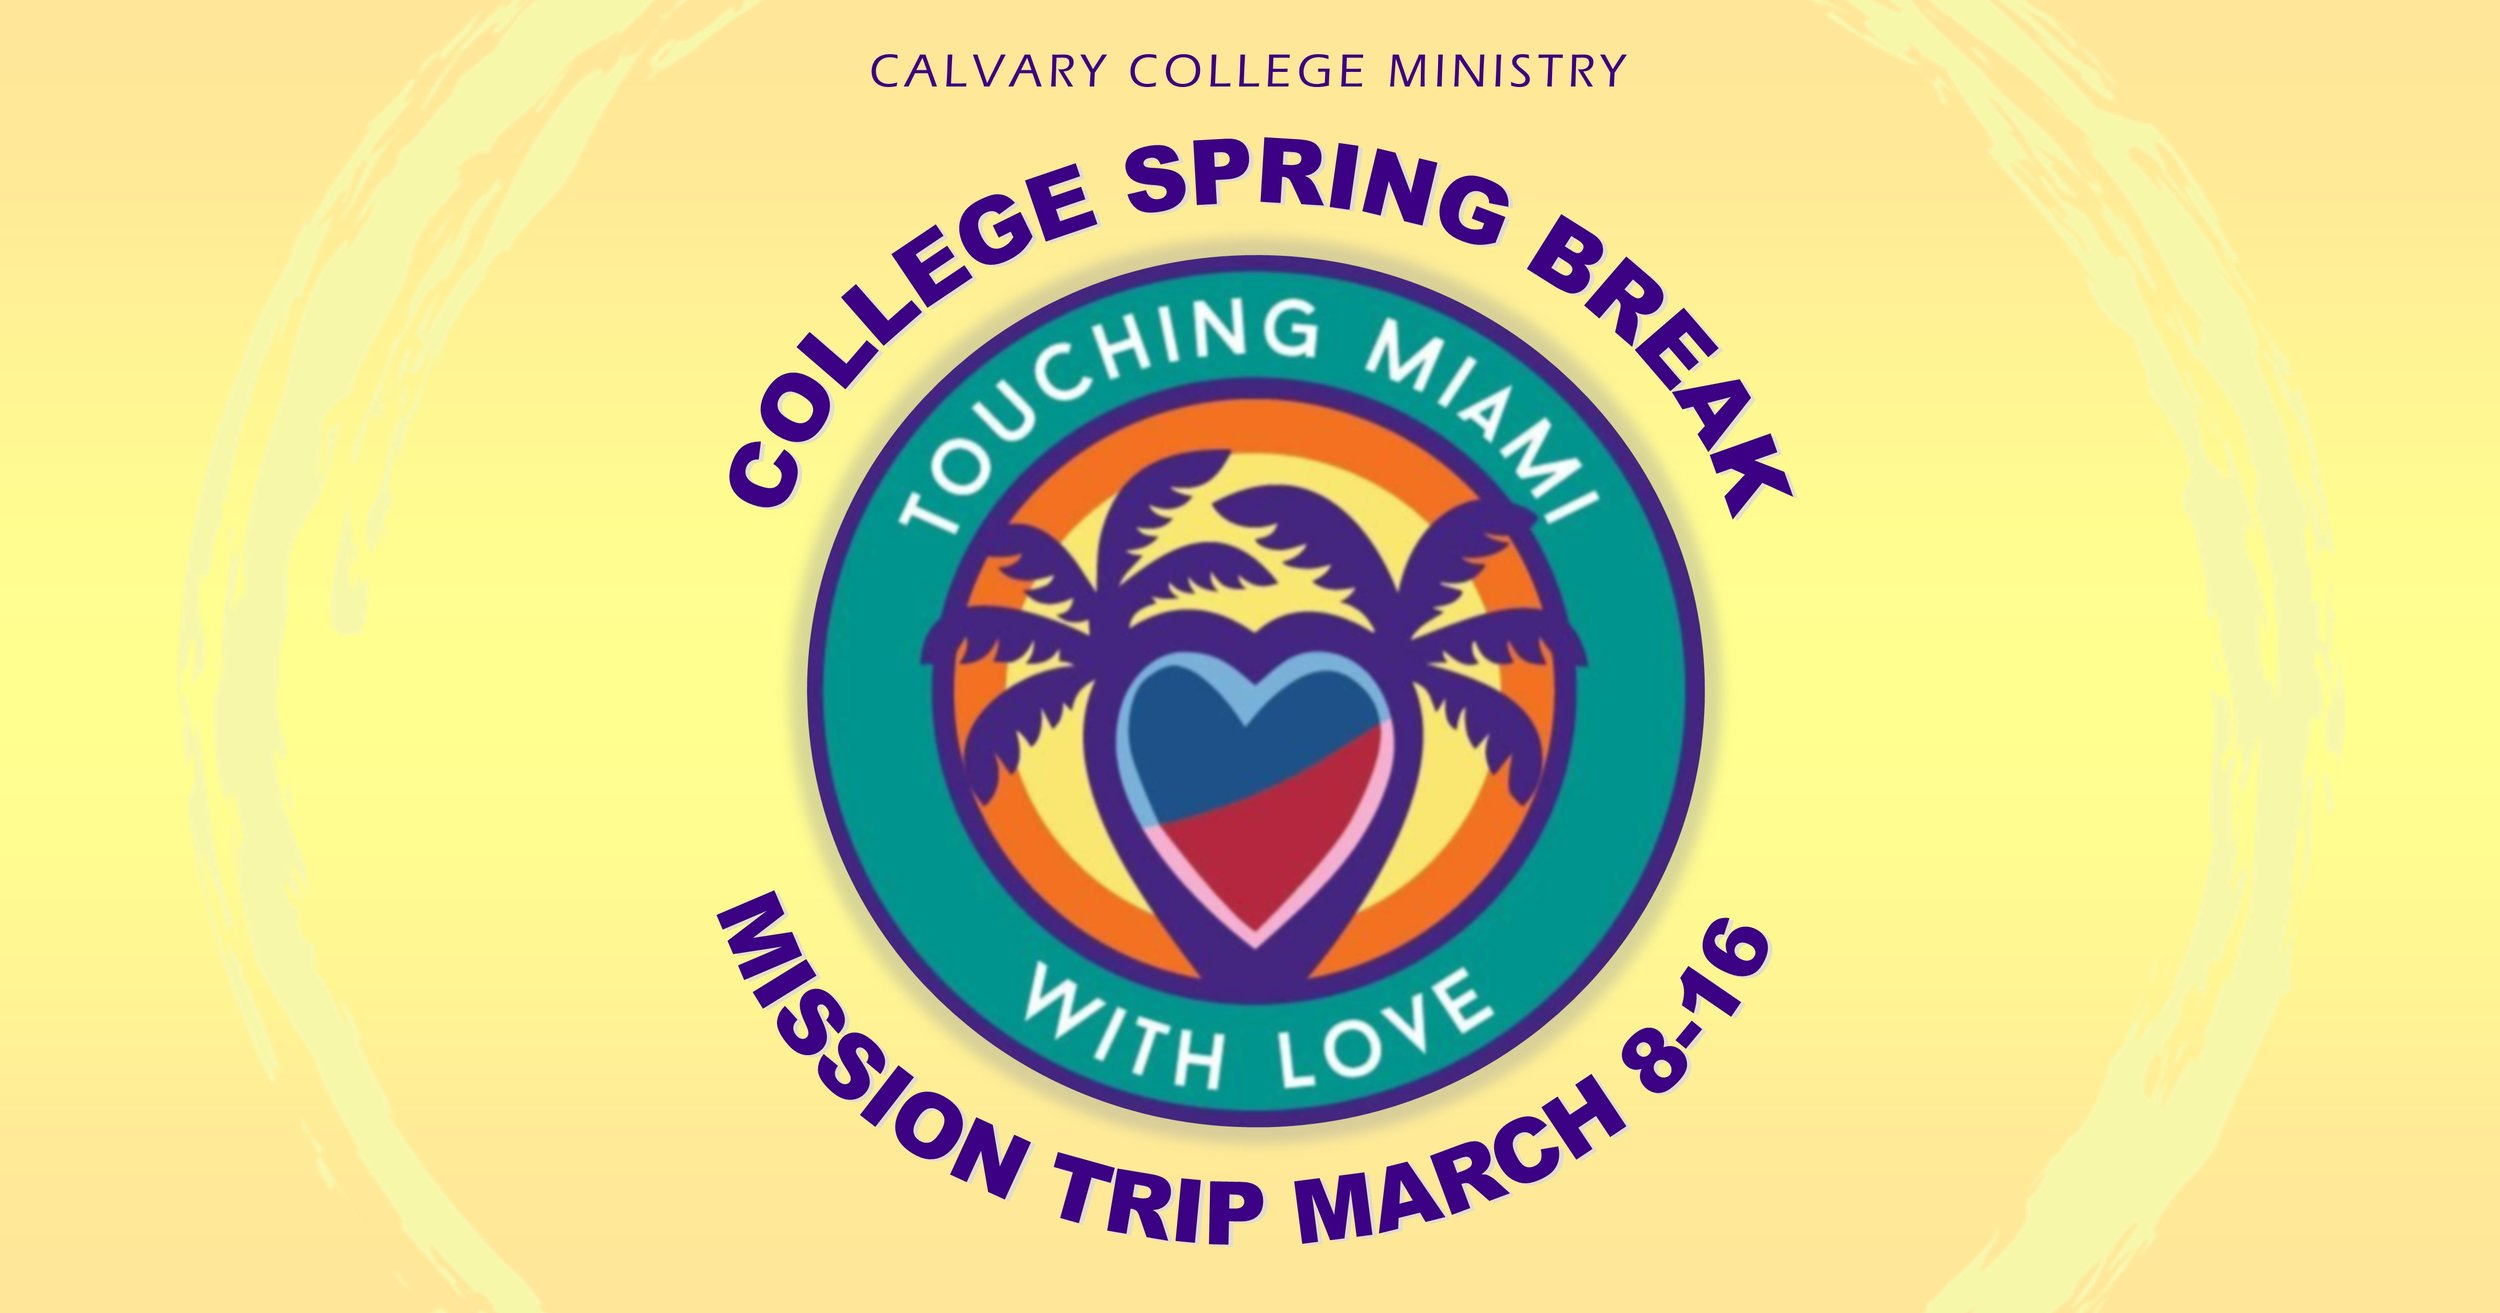 College Spring Break Facebook 011419.jpg